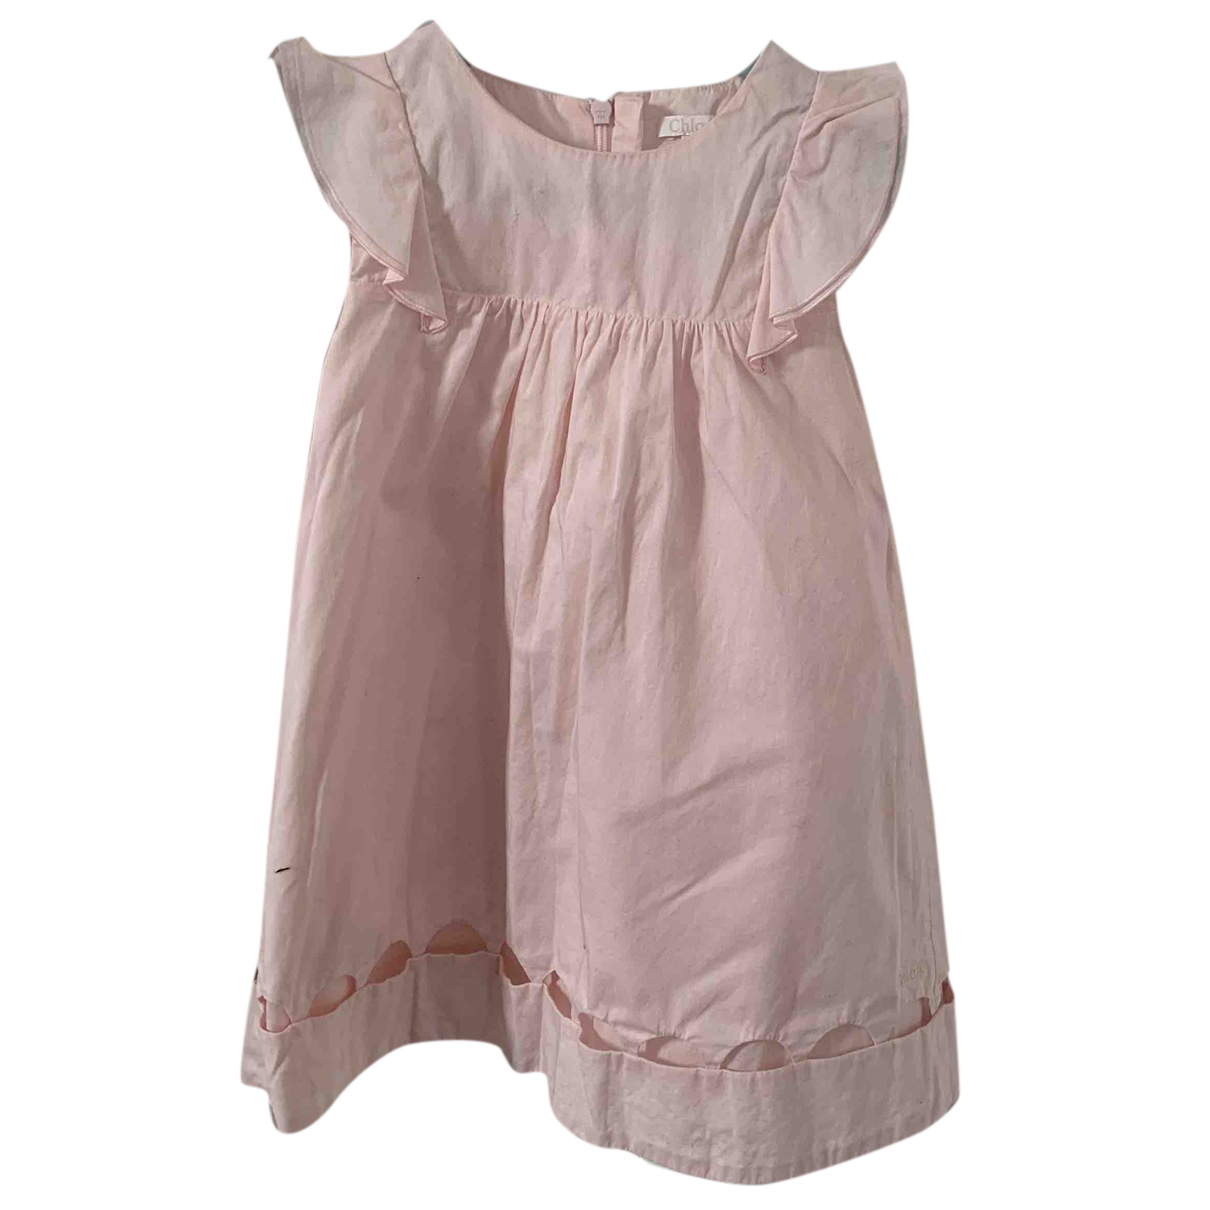 Chloé N Pink Cotton dress for Kids 2 years - up to 86cm FR